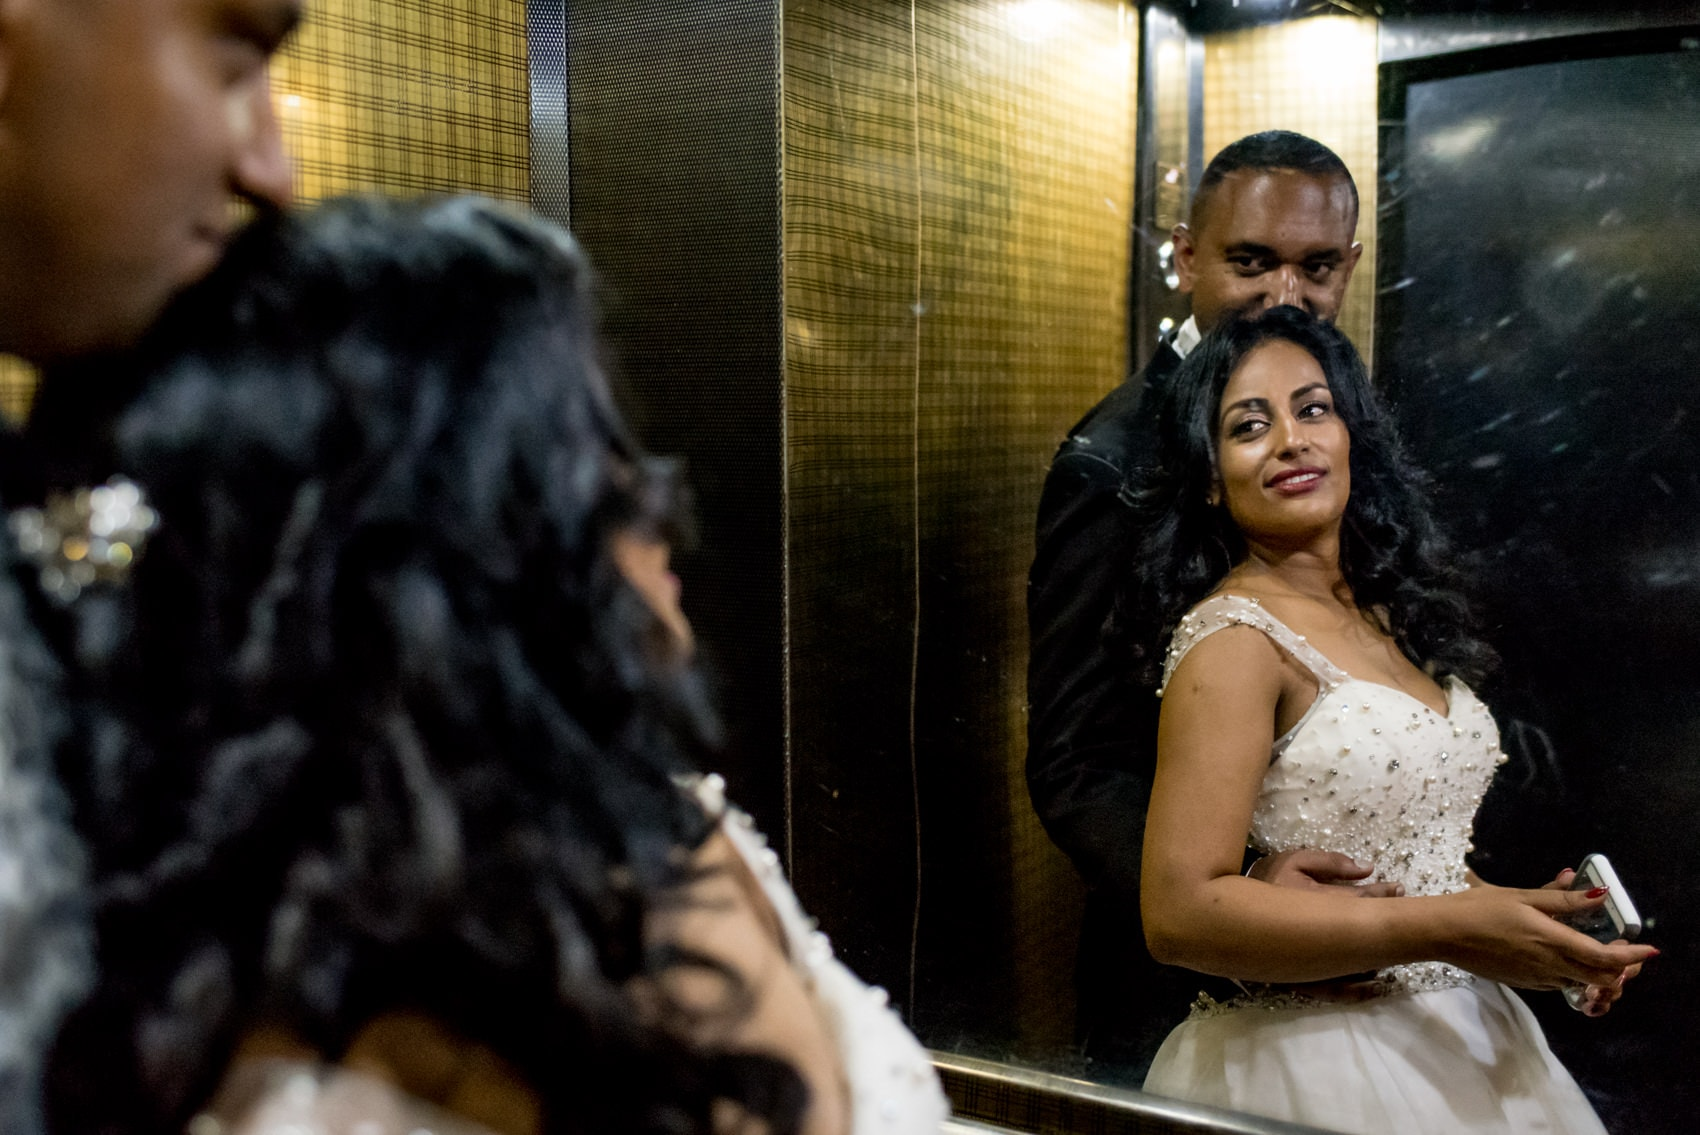 Ethiopian bride and groom in the lift